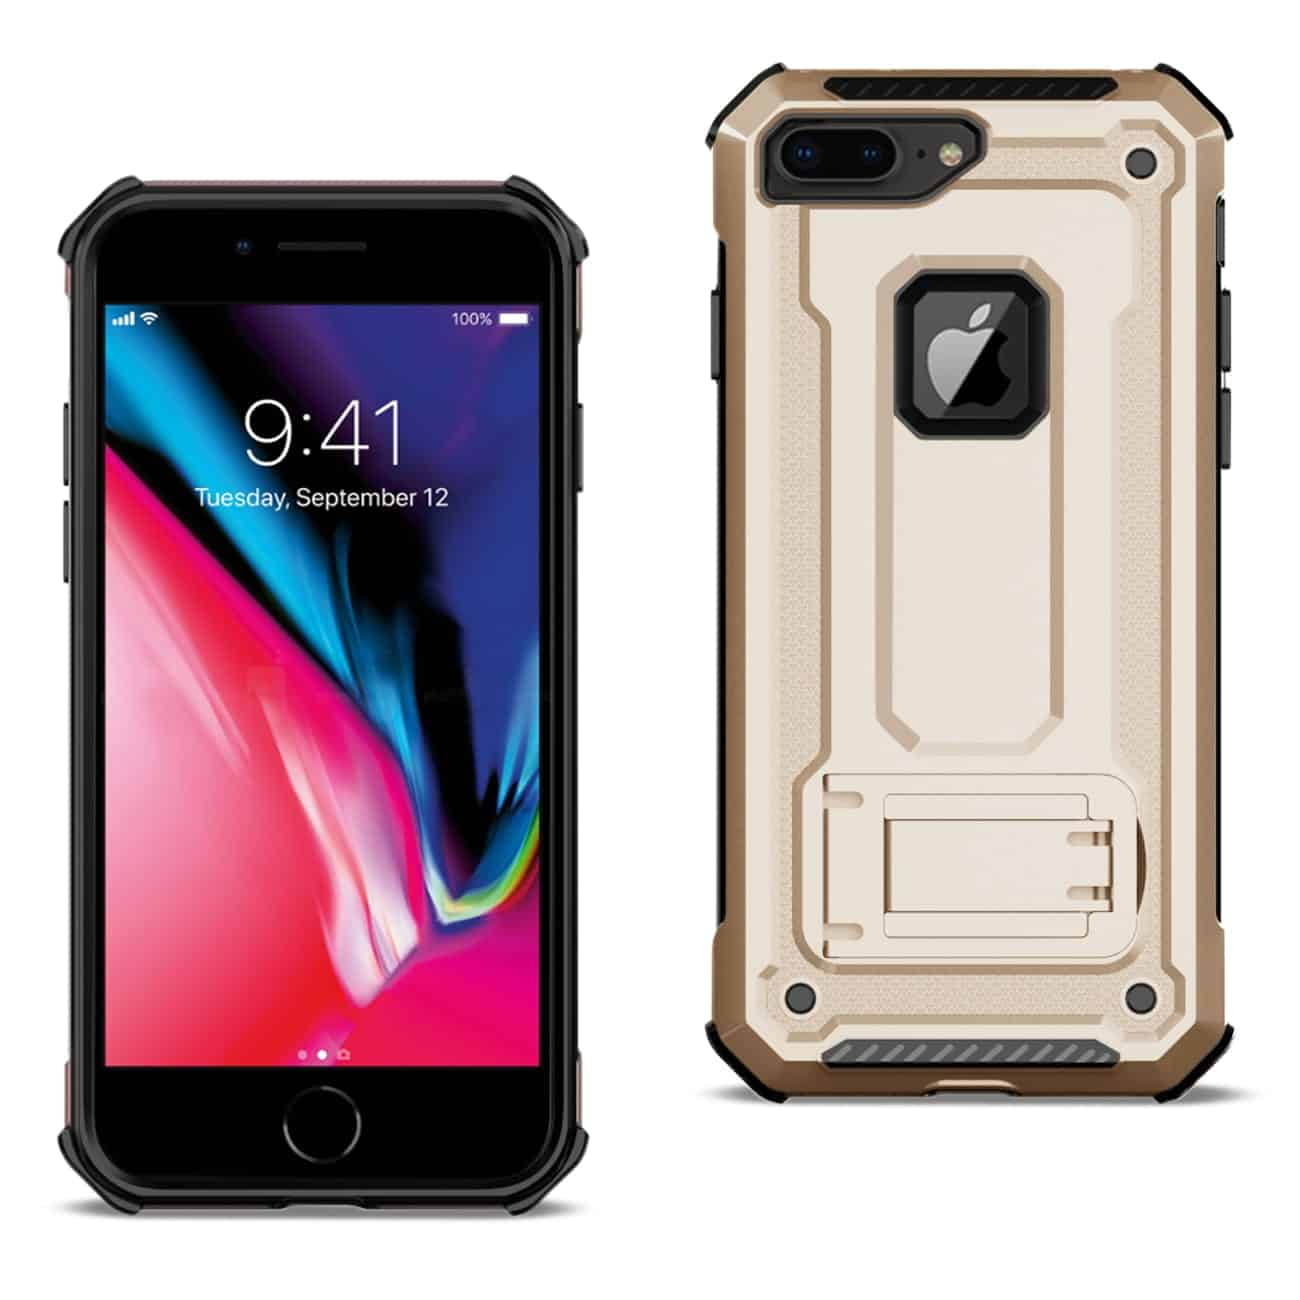 APPLE IPHONE 8 PLUS Case With Kickstand In Gold